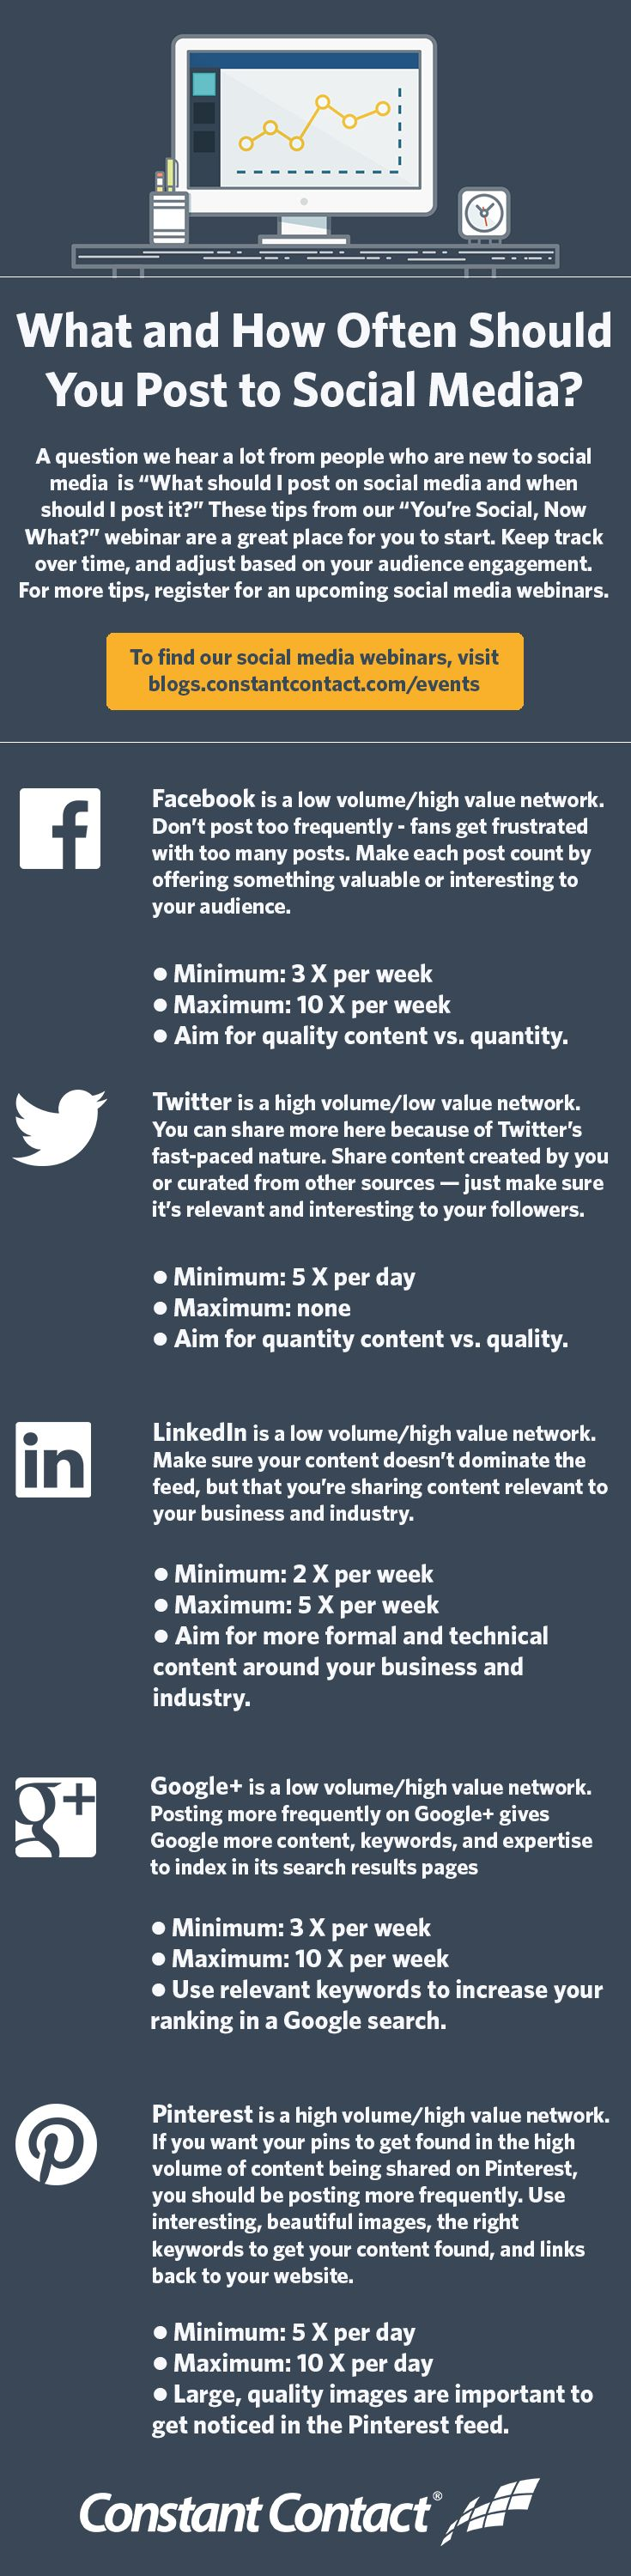 Social Media Posting Frequency Infographic by @constantcontact